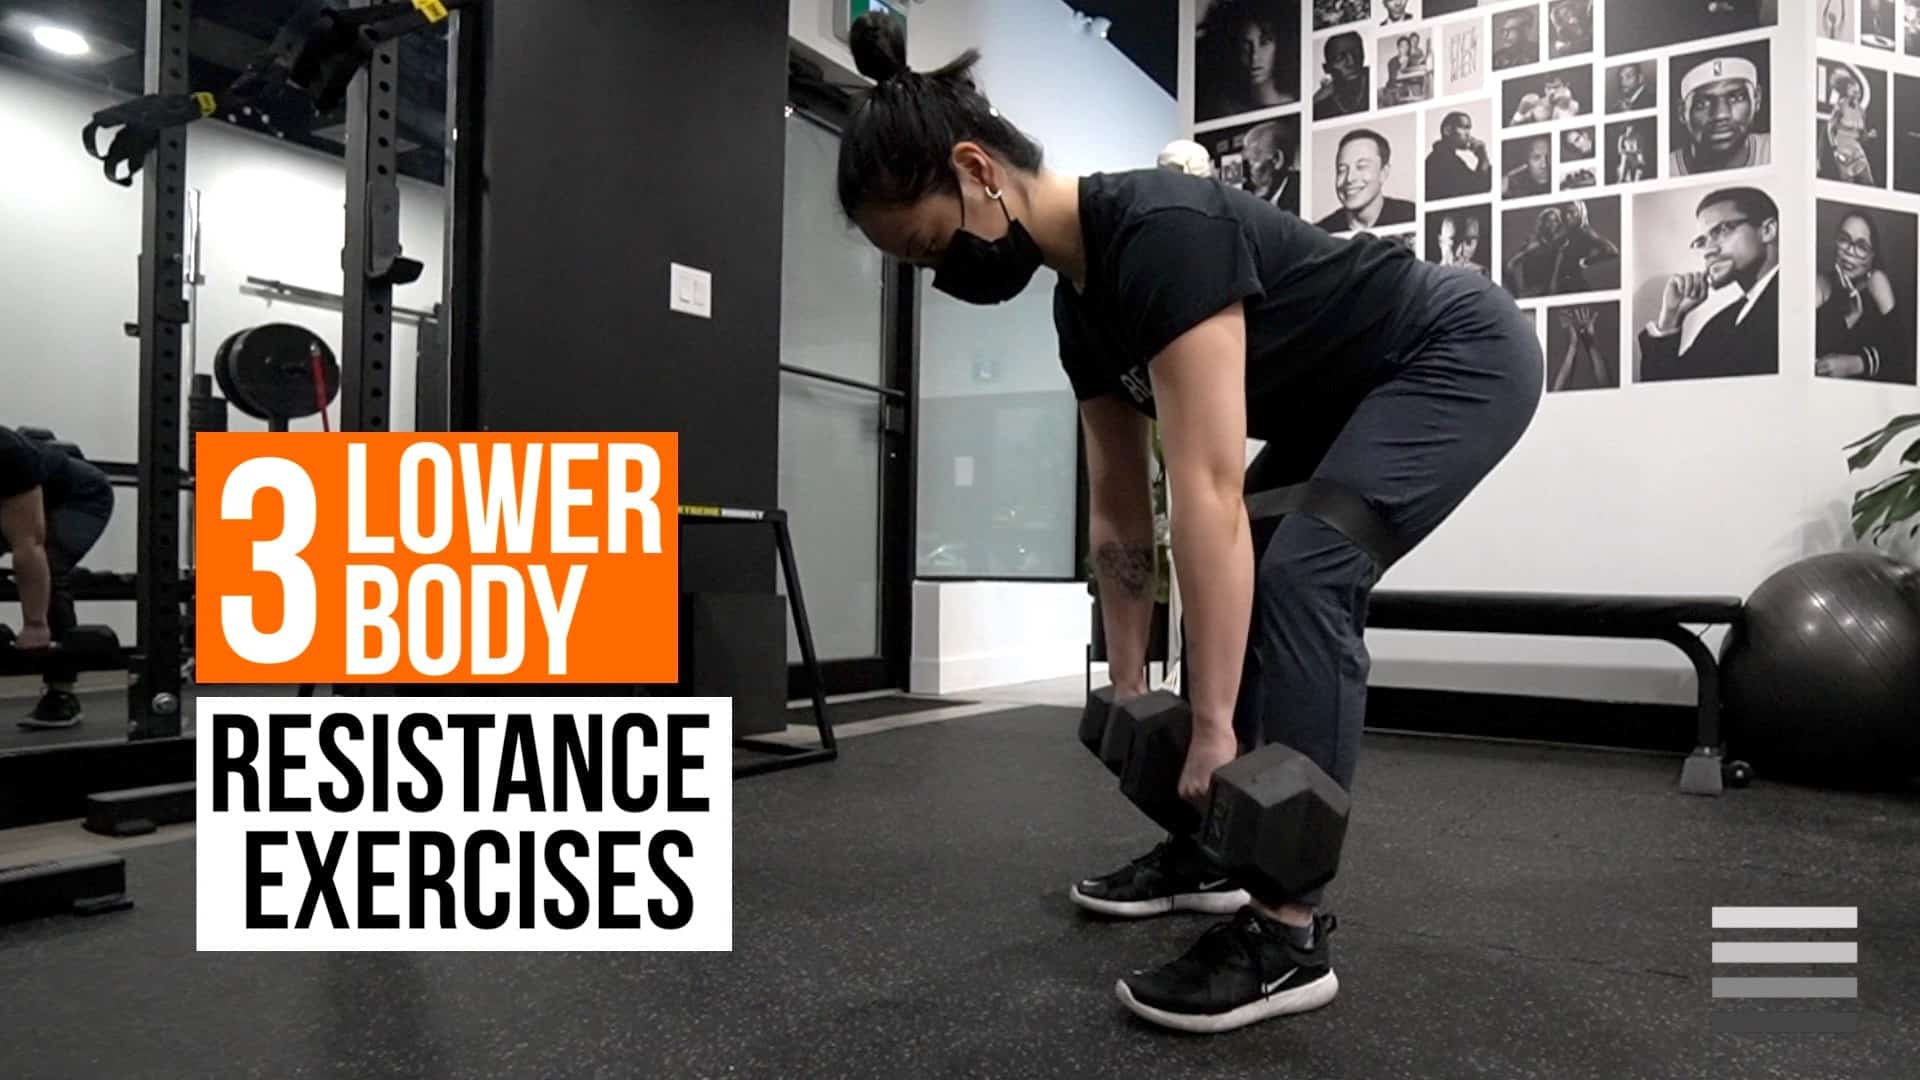 3 Lower Body Resistance Exercises